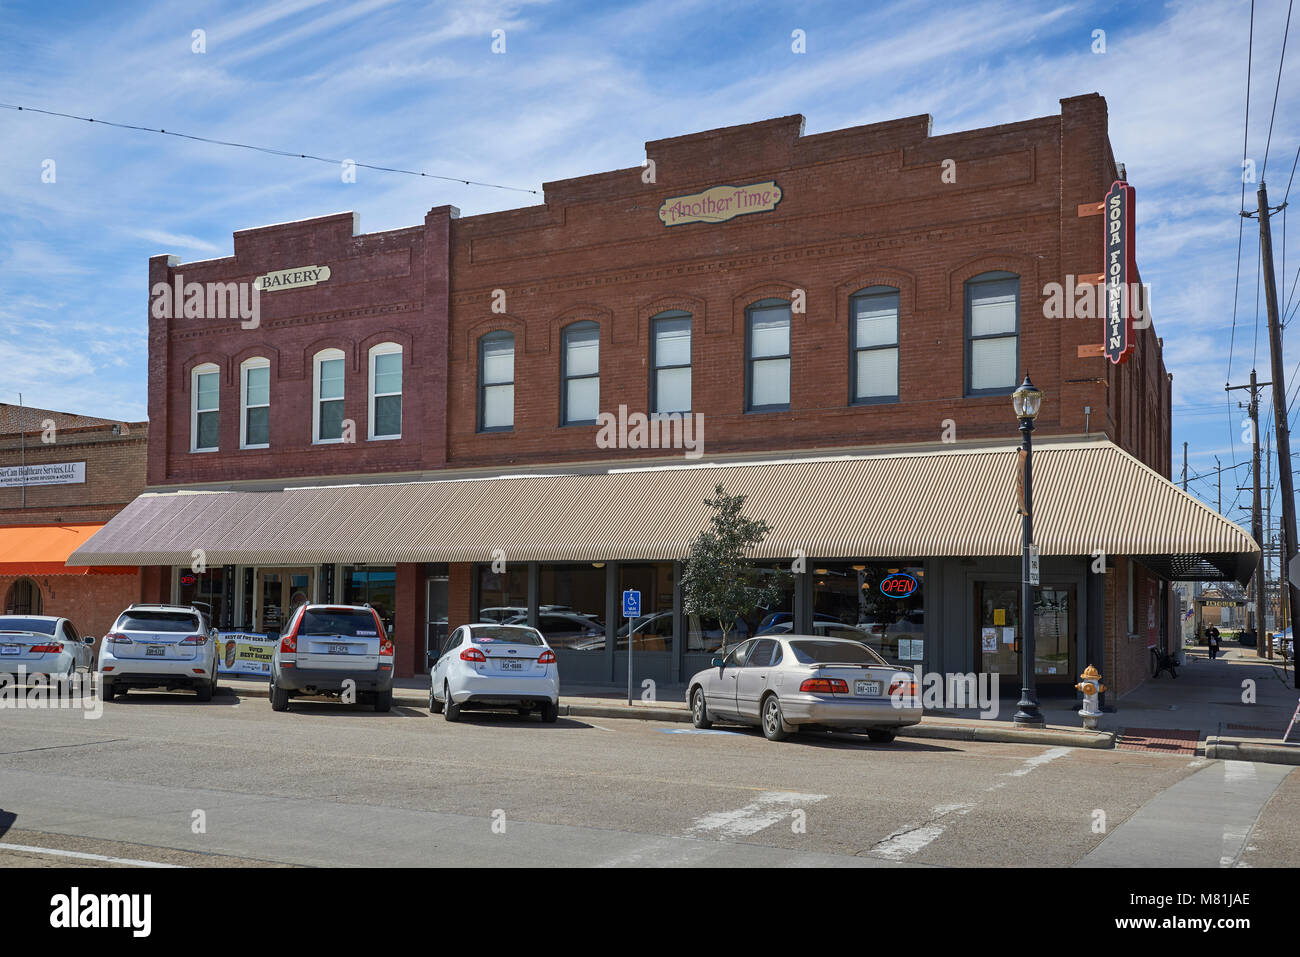 one of the many Old red brick buildings in Rosenberg, Texas, this building containing a Bakery and Soda Fountain - Stock Image